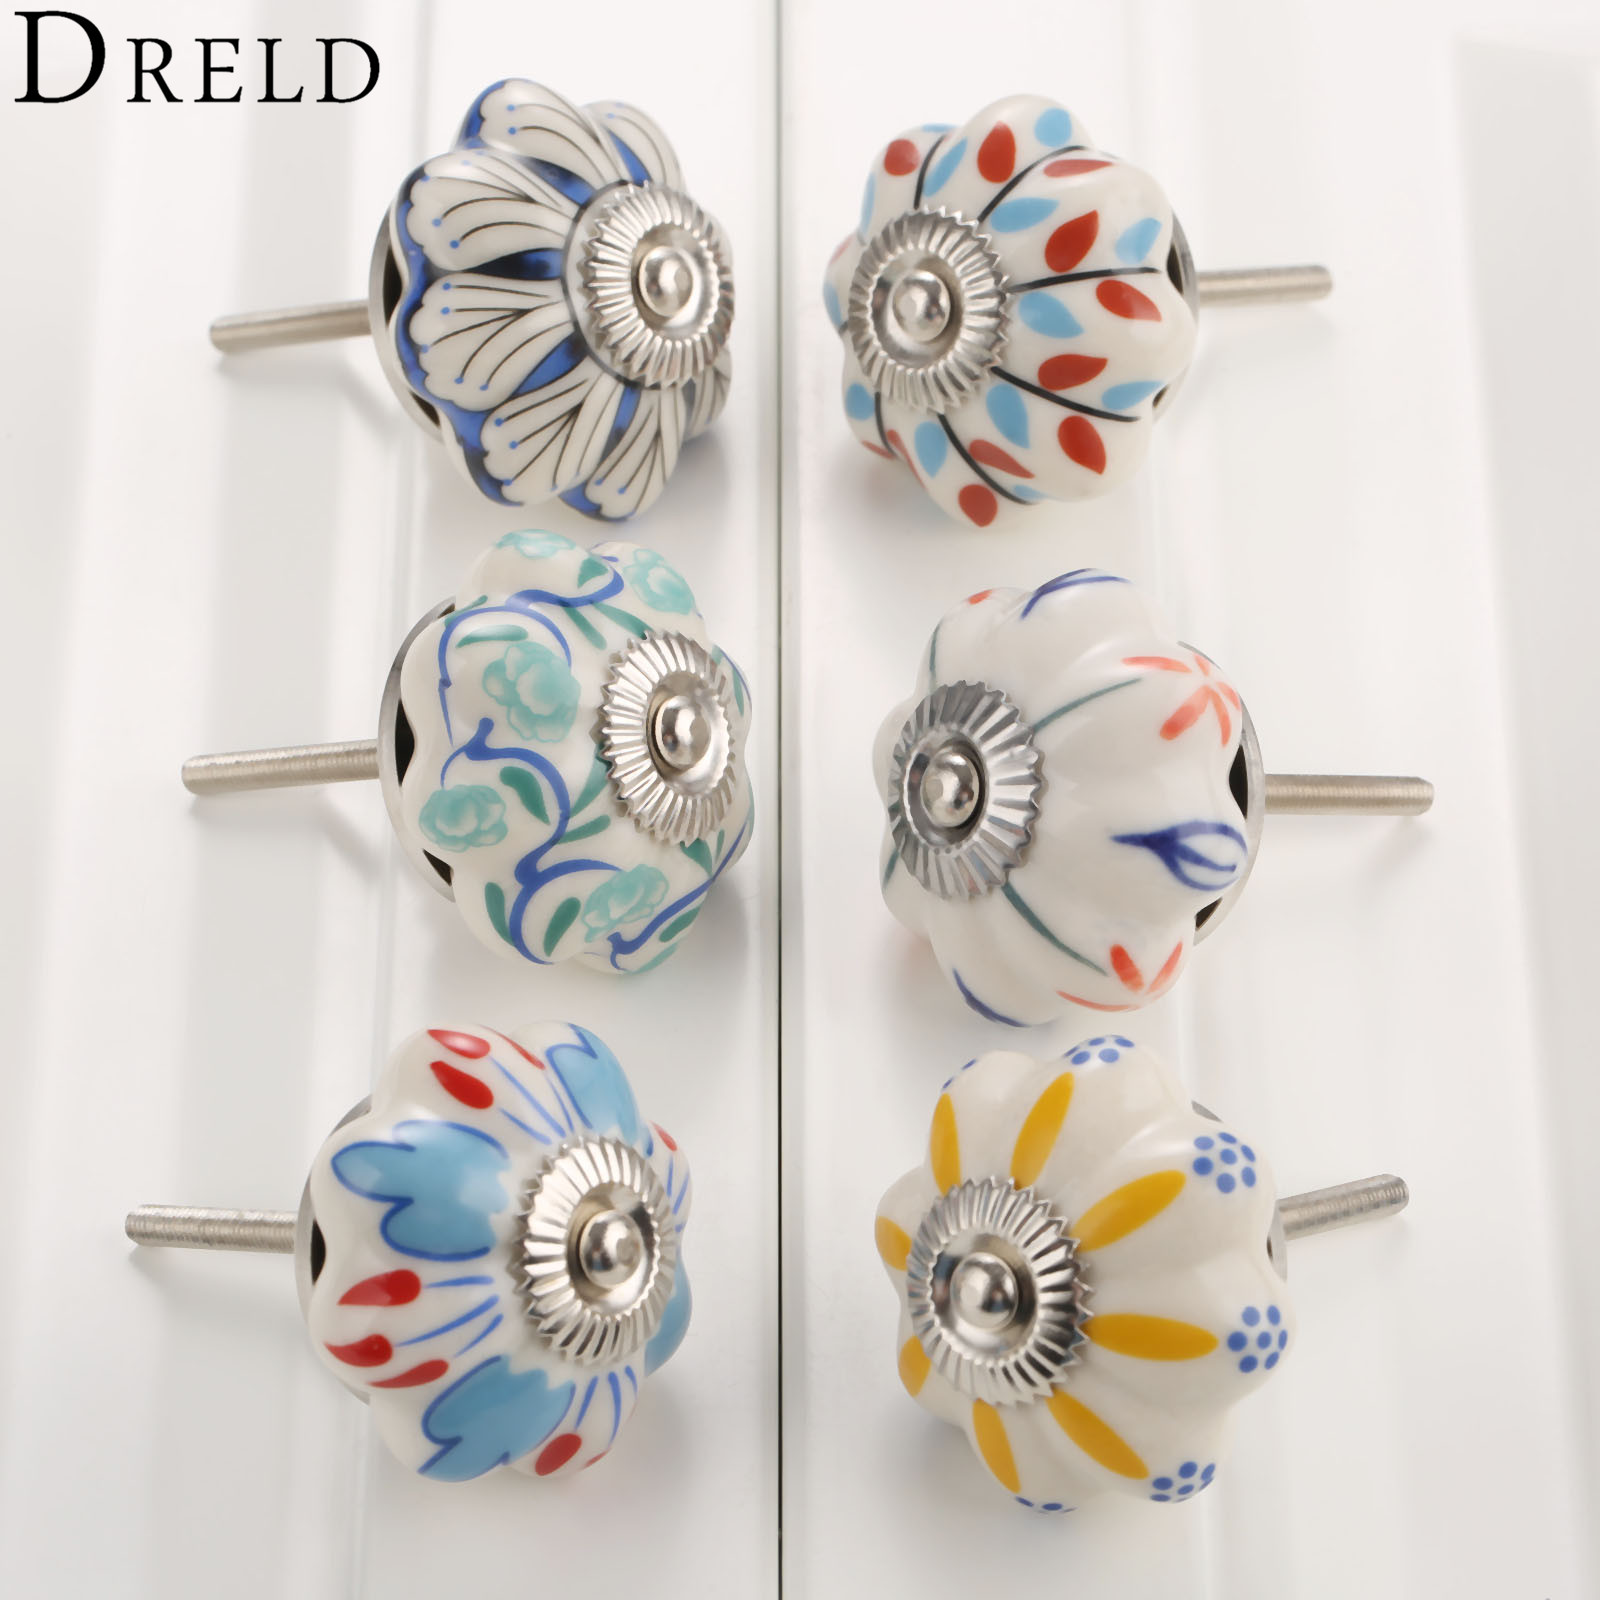 DRELD 40mm Furniture Handle Ceramic Drawer Cabinet Knobs and Handles Knobs Door Cupboard Kitchen Pull Handles Furniture Hardware dreld 96 128 160mm furniture handle modern cabinet knobs and handles door cupboard drawer kitchen pull handle furniture hardware